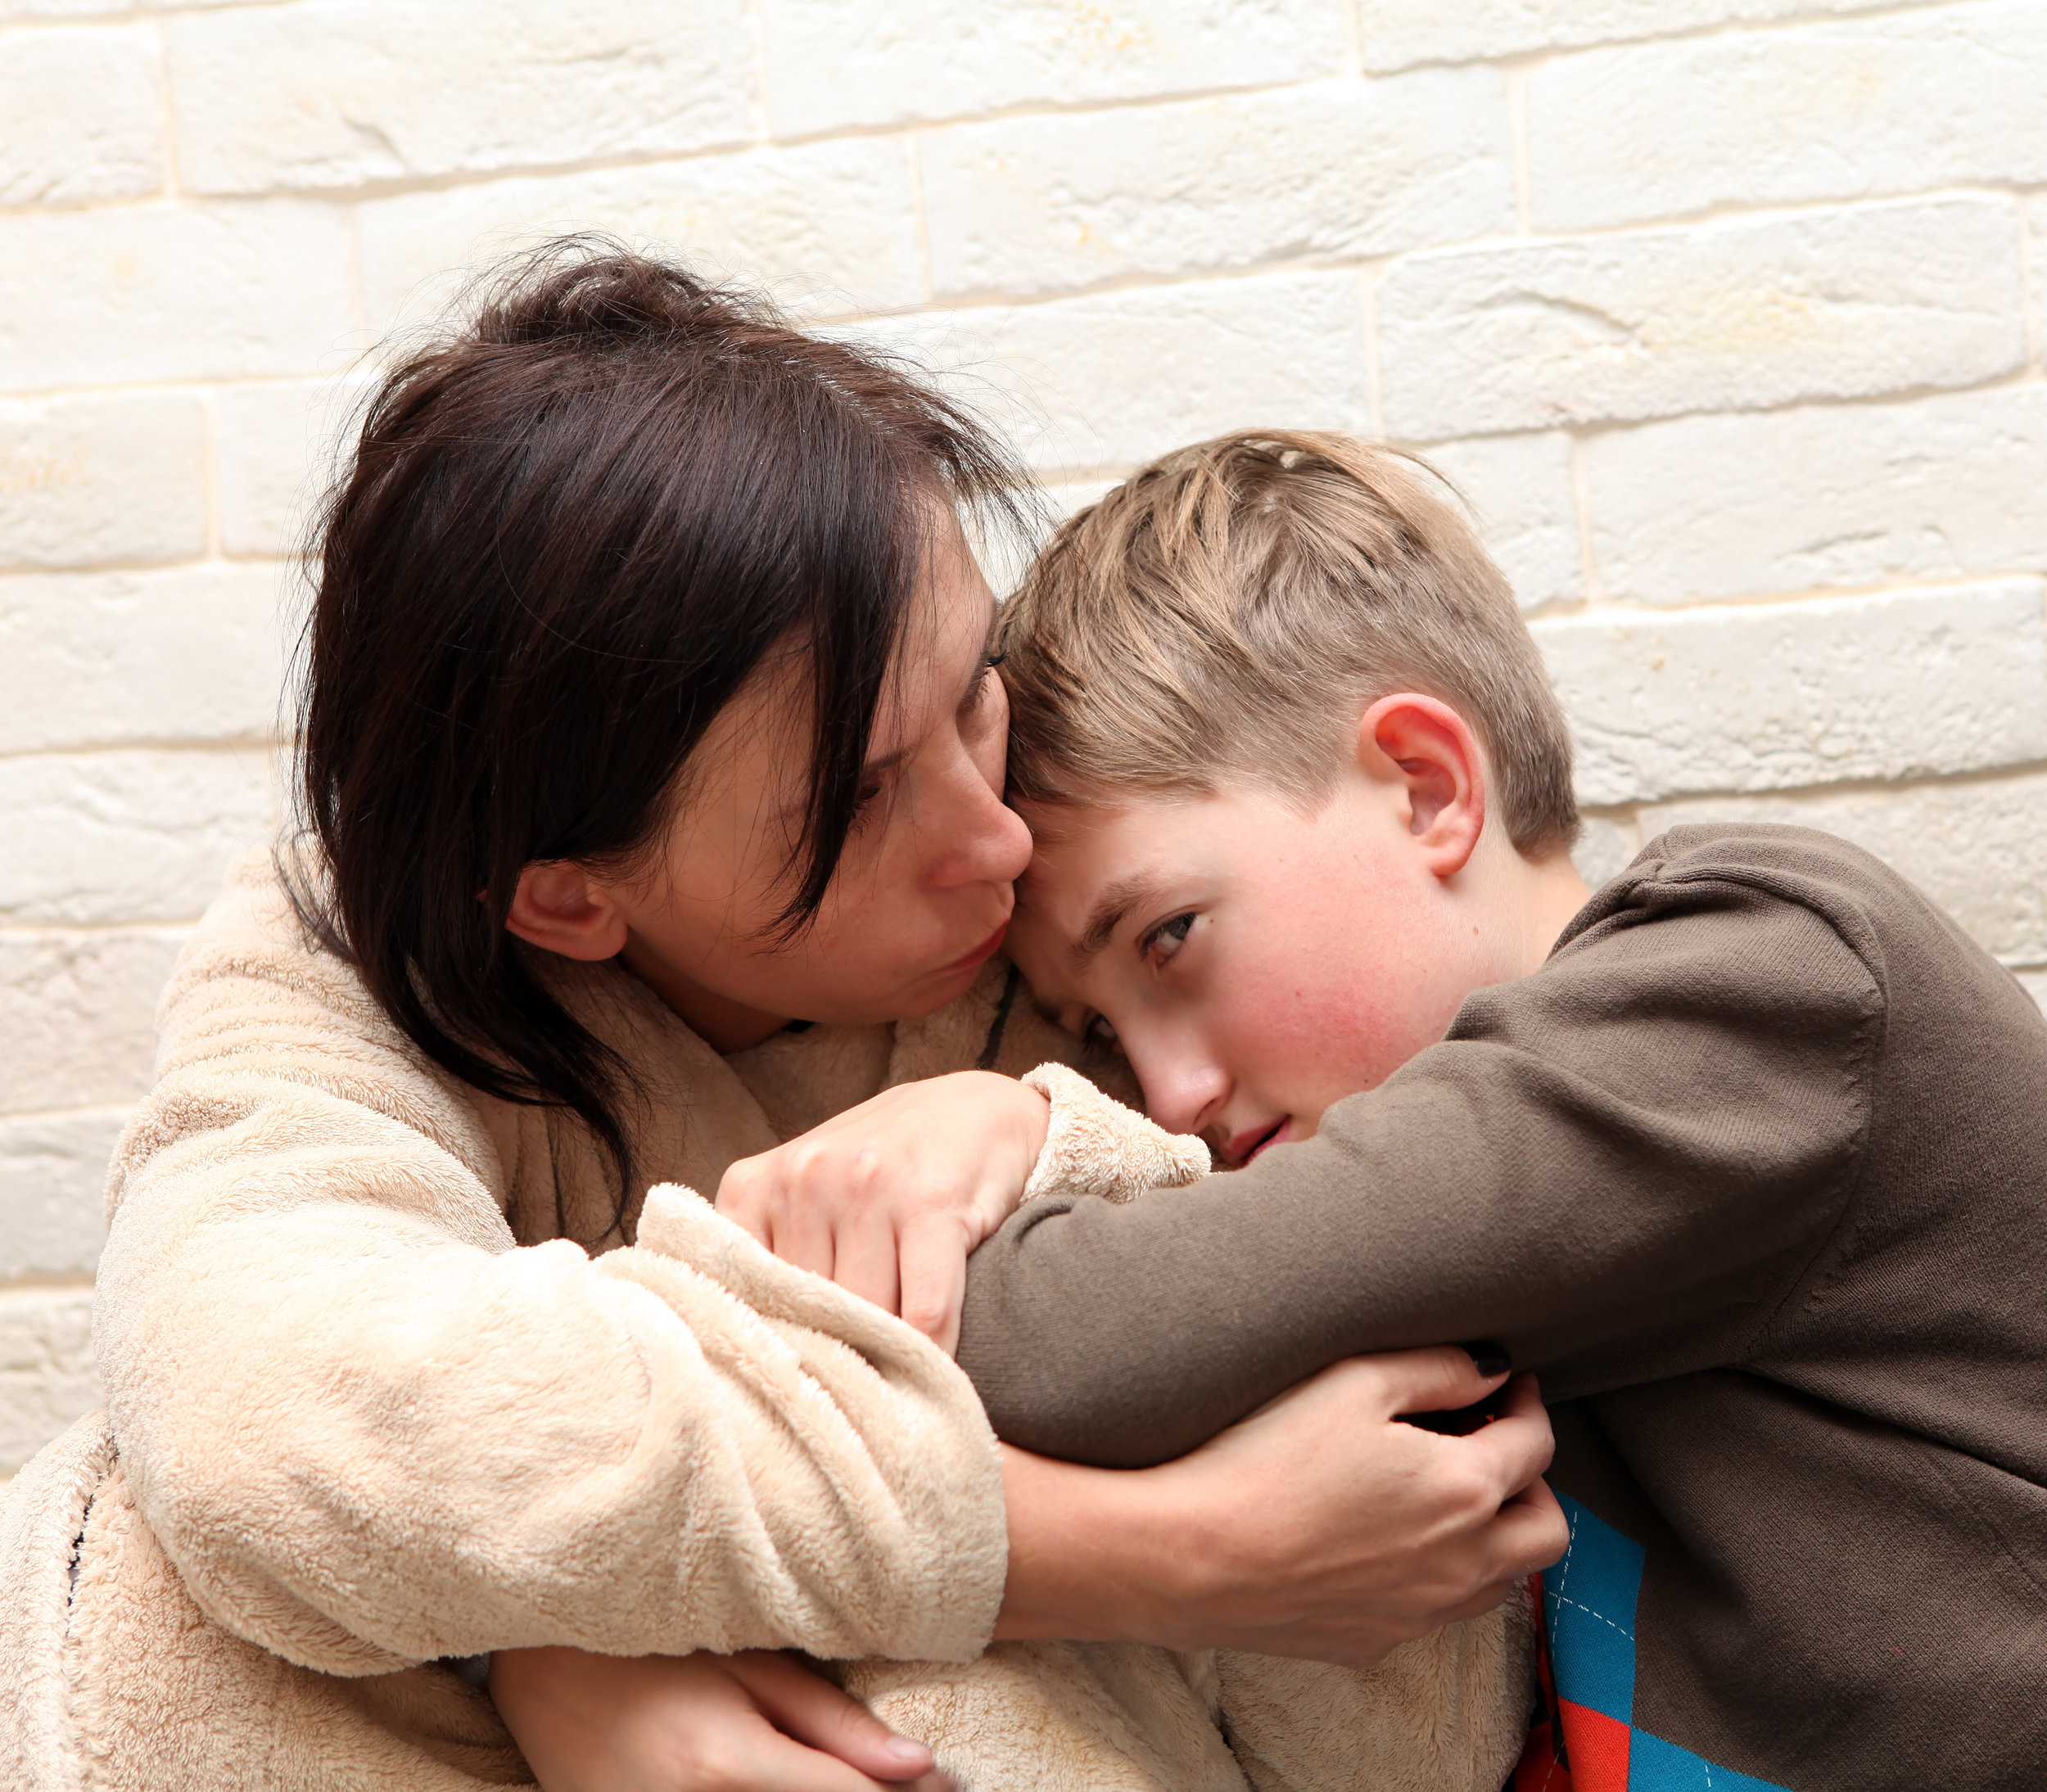 child being comforted by woman